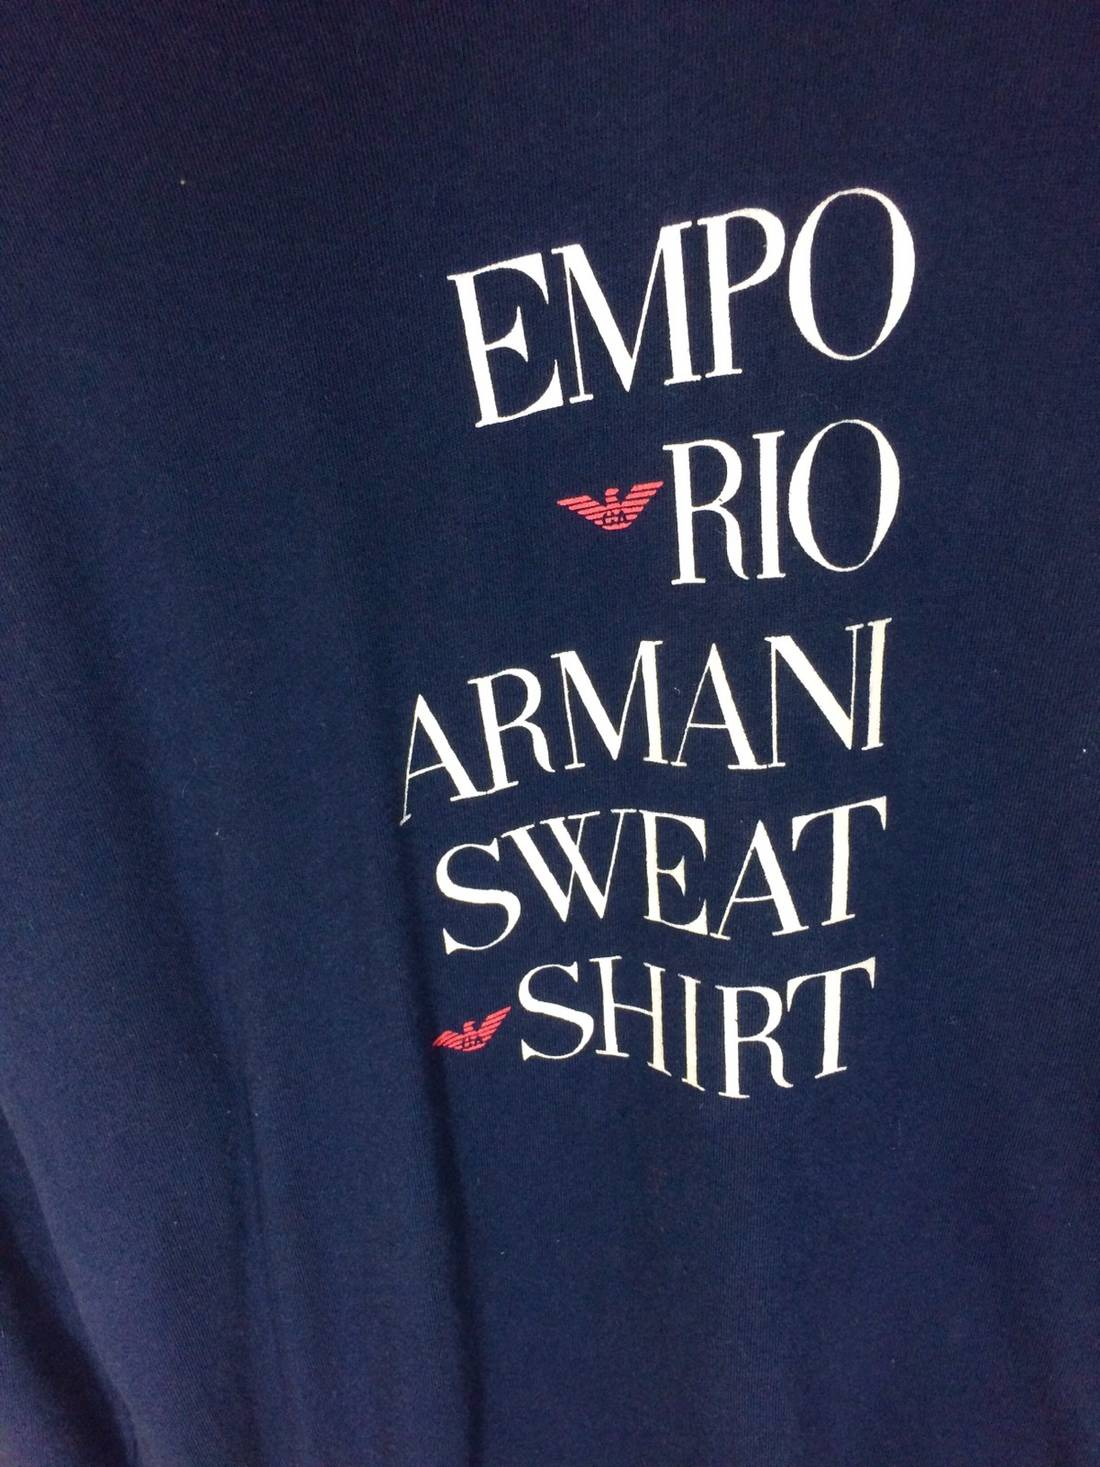 Rare Design Emporio Armani Big Spell Out Sweatshirt Tsv3pyNXm